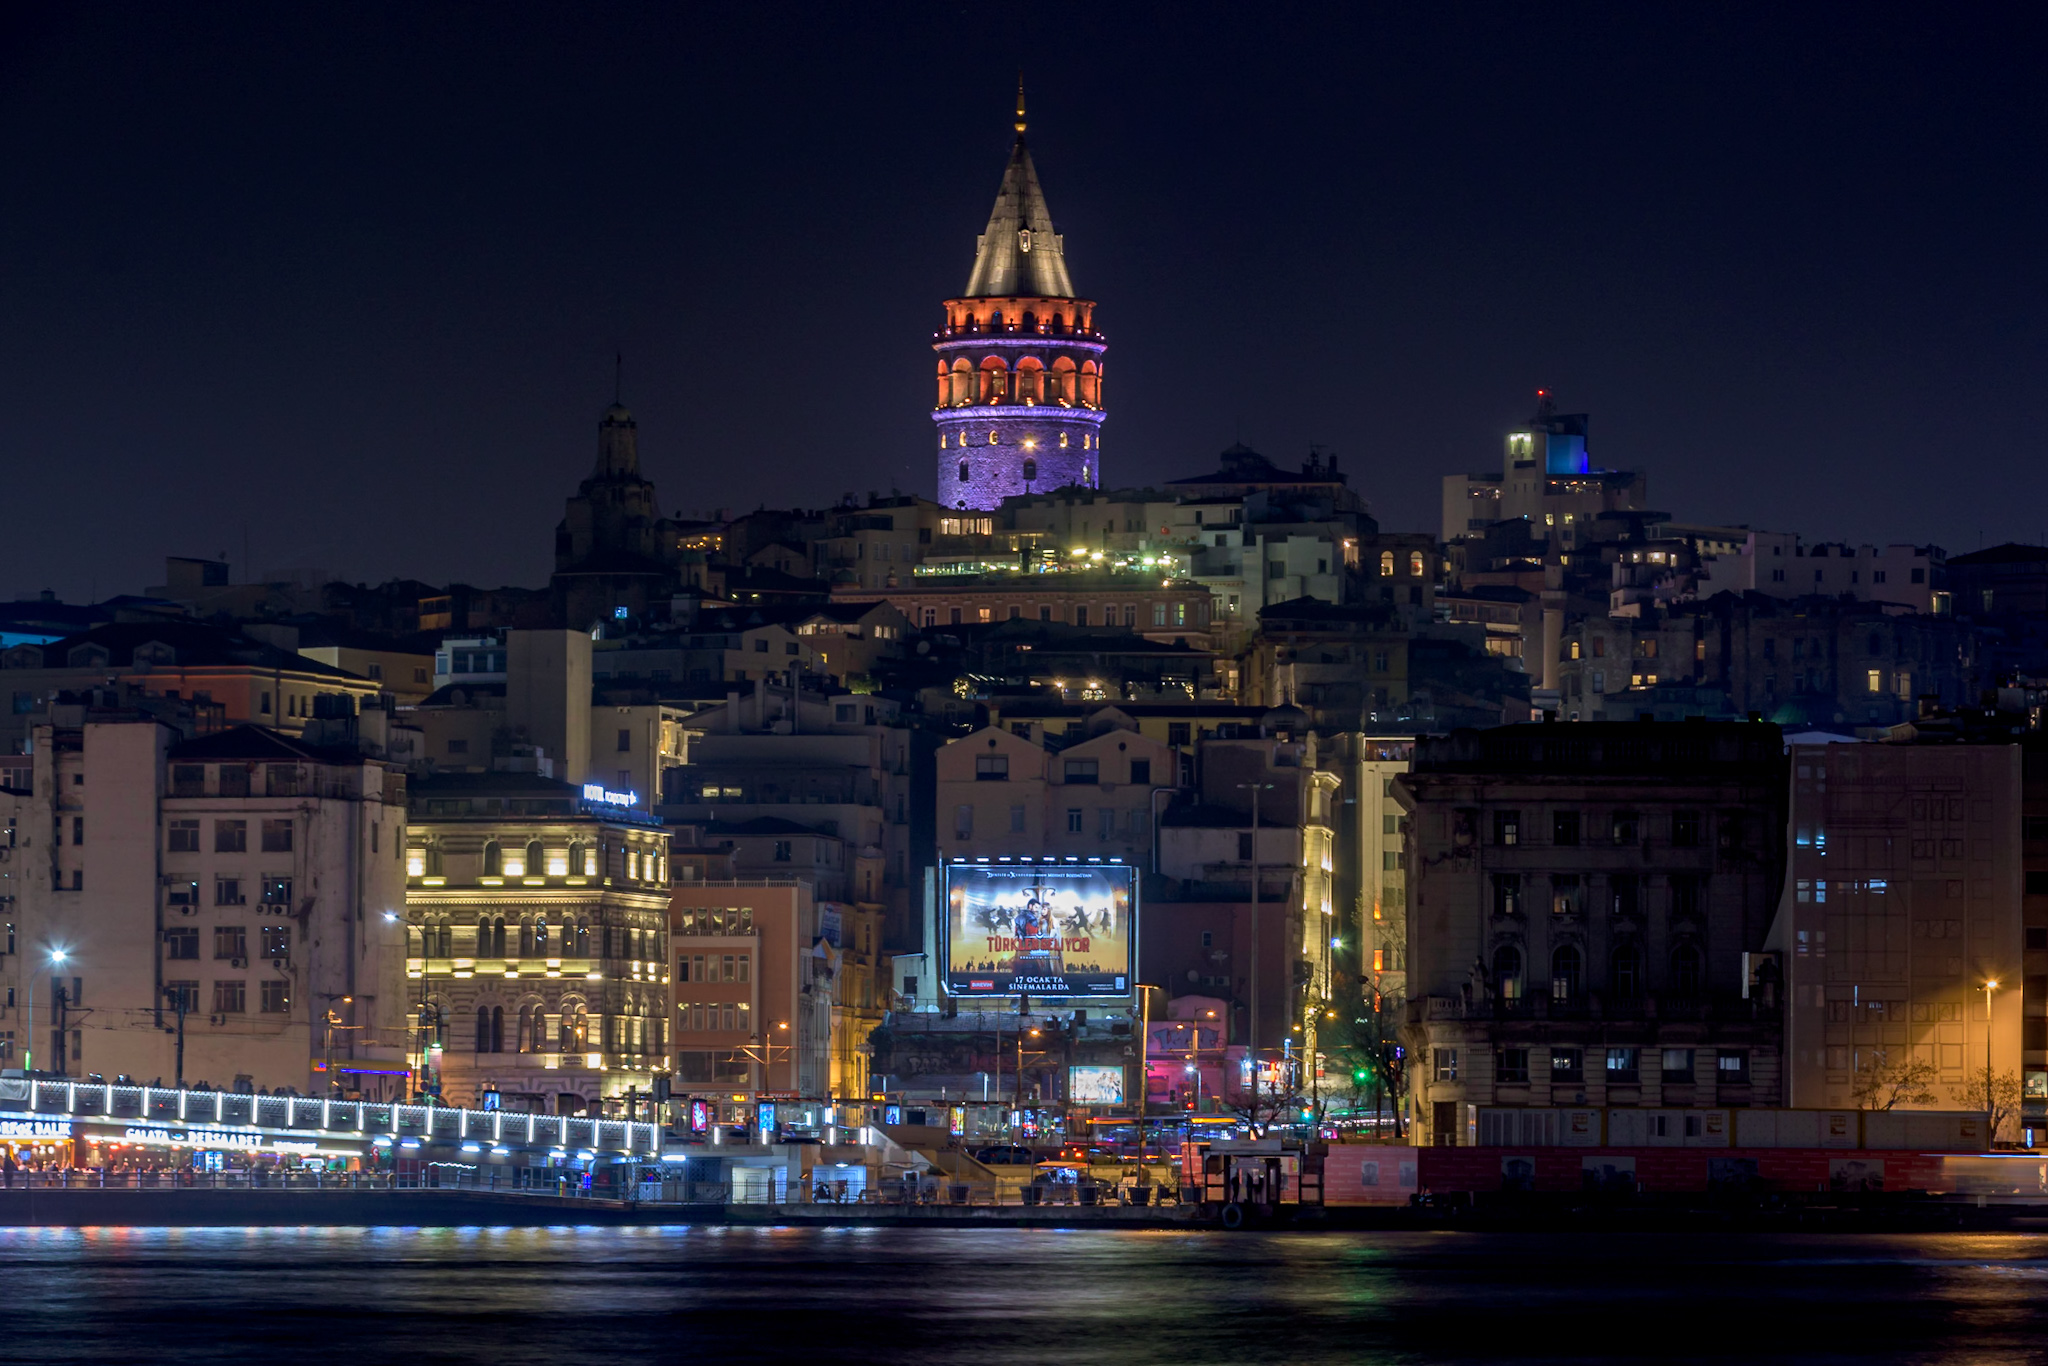 Galata Tower, Turkey